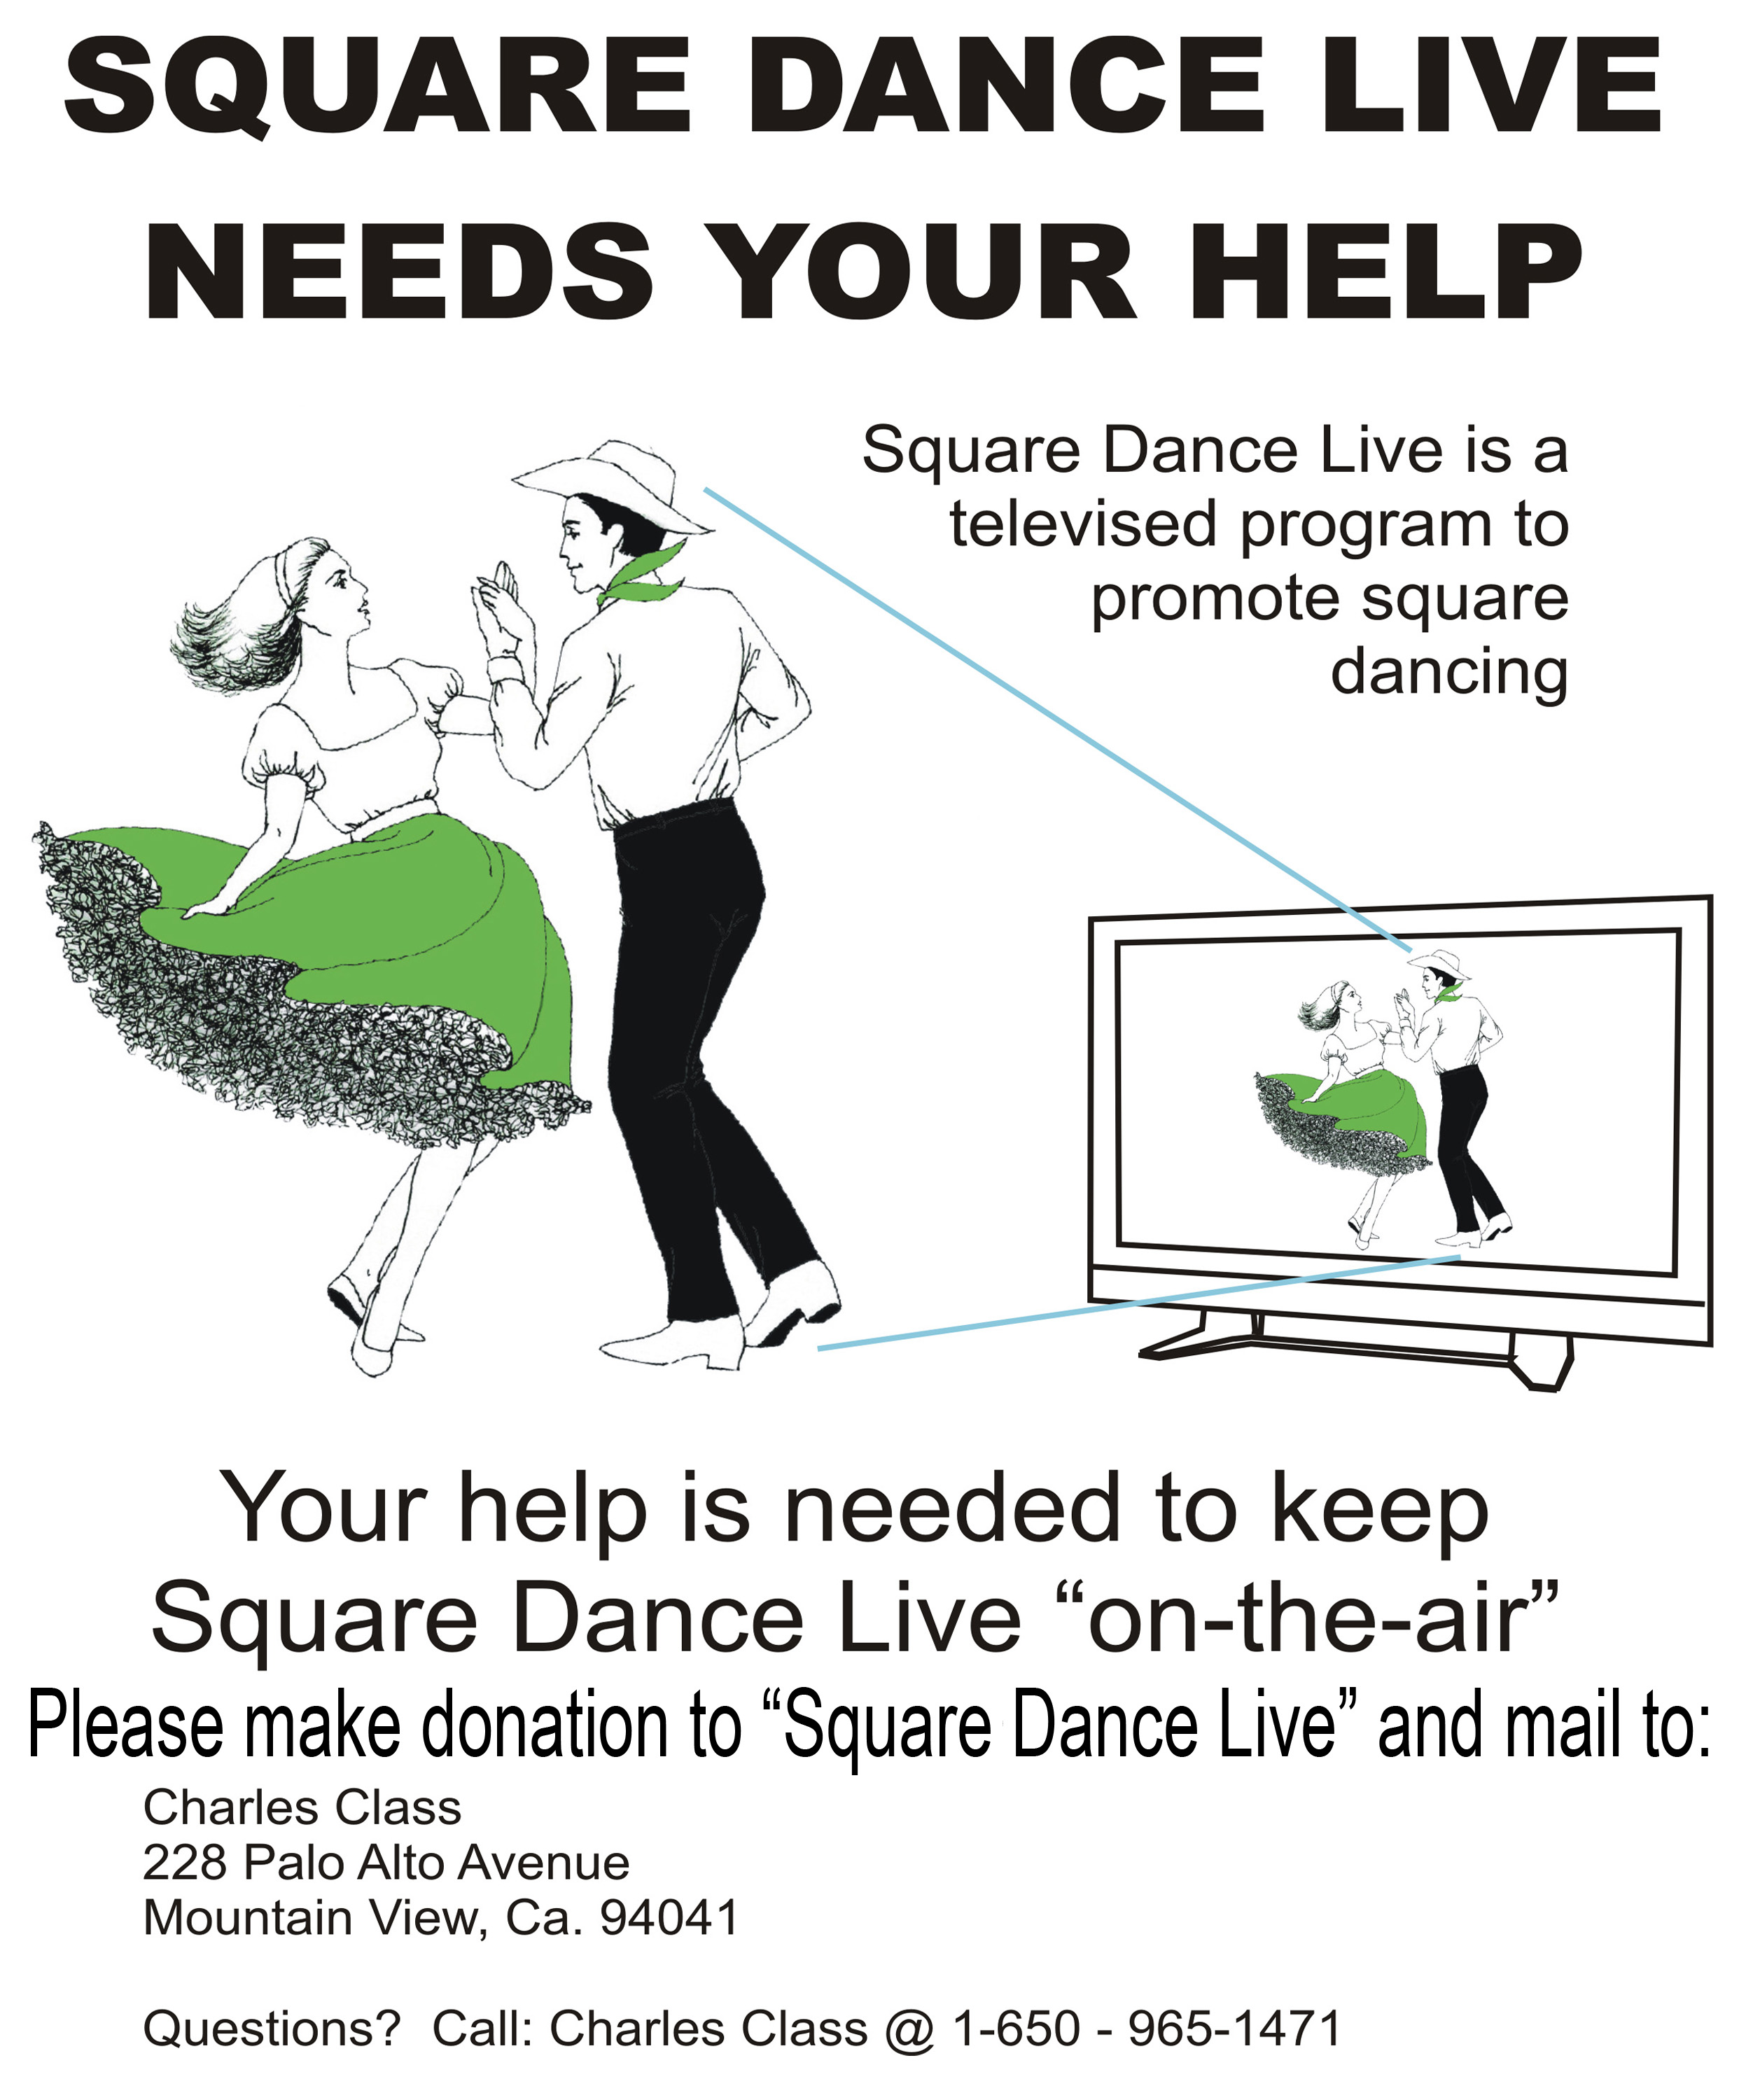 "Your help is needed to keep SQUARE DANCE LIVE ""ON THE AIR"" Please make checks payable to Square Dance Live and mail to Charles Class 228 Palo Alto Ave. Mountain View, CA 94041"